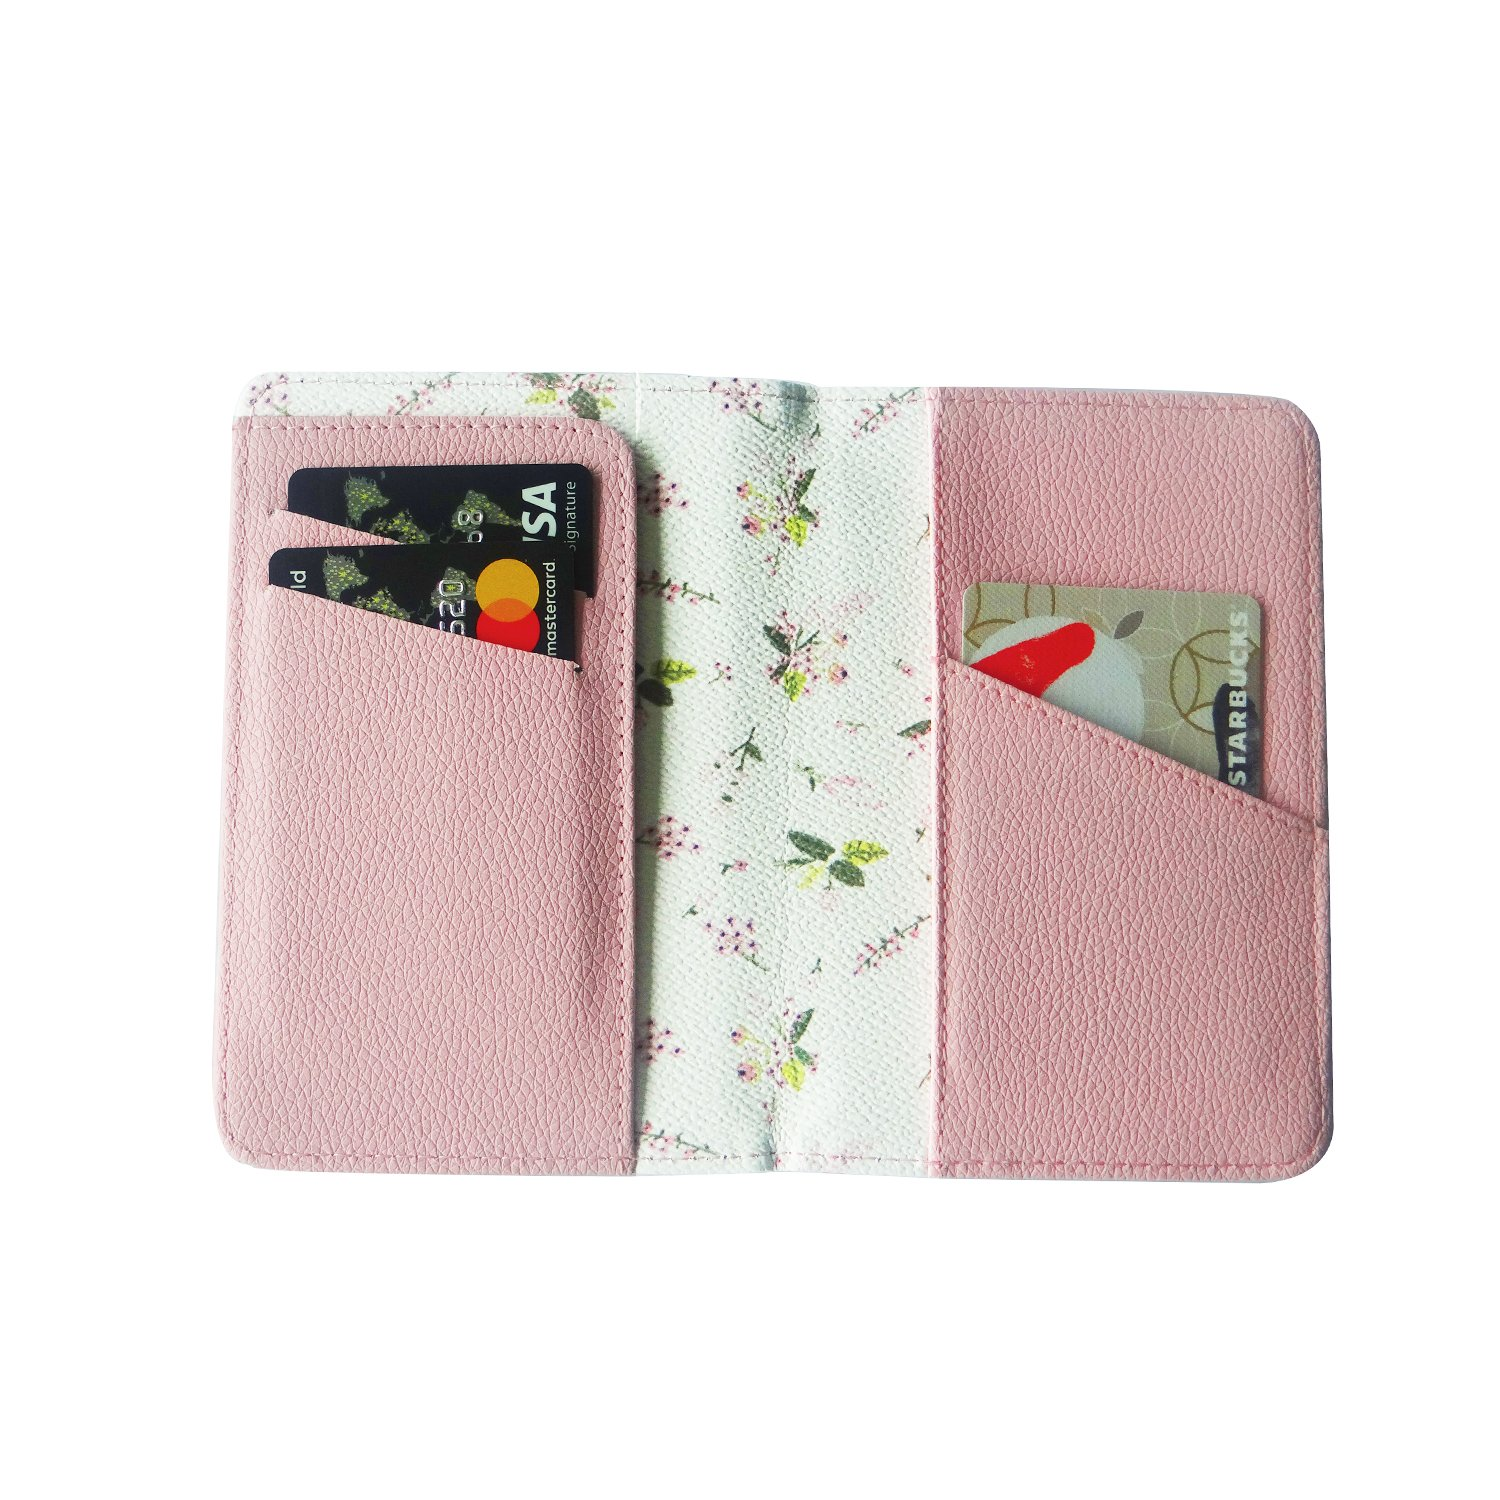 Passport Wallet Holder for Men& Women, RFID Blocking Travel Waterproof Credit Card& Money Bag Multifunctional Family Storage Organizer Id Card